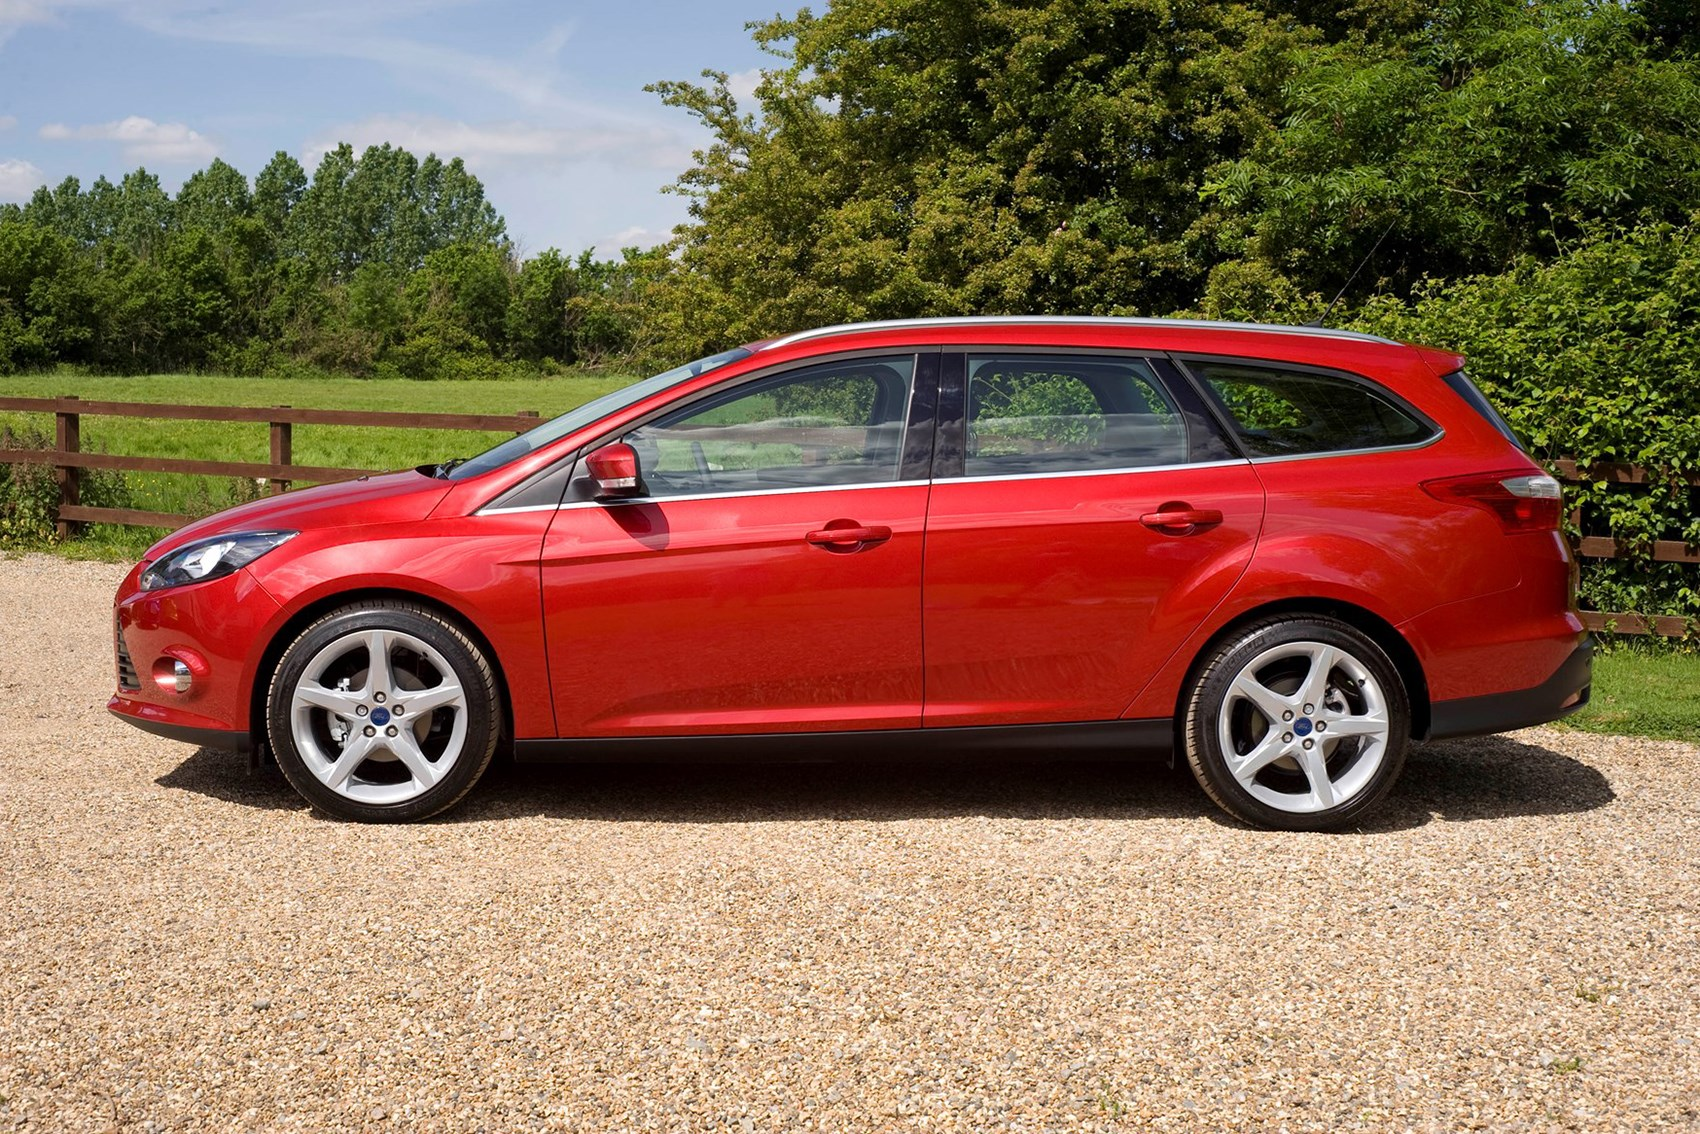 Ford Focus Estate - best small family estates